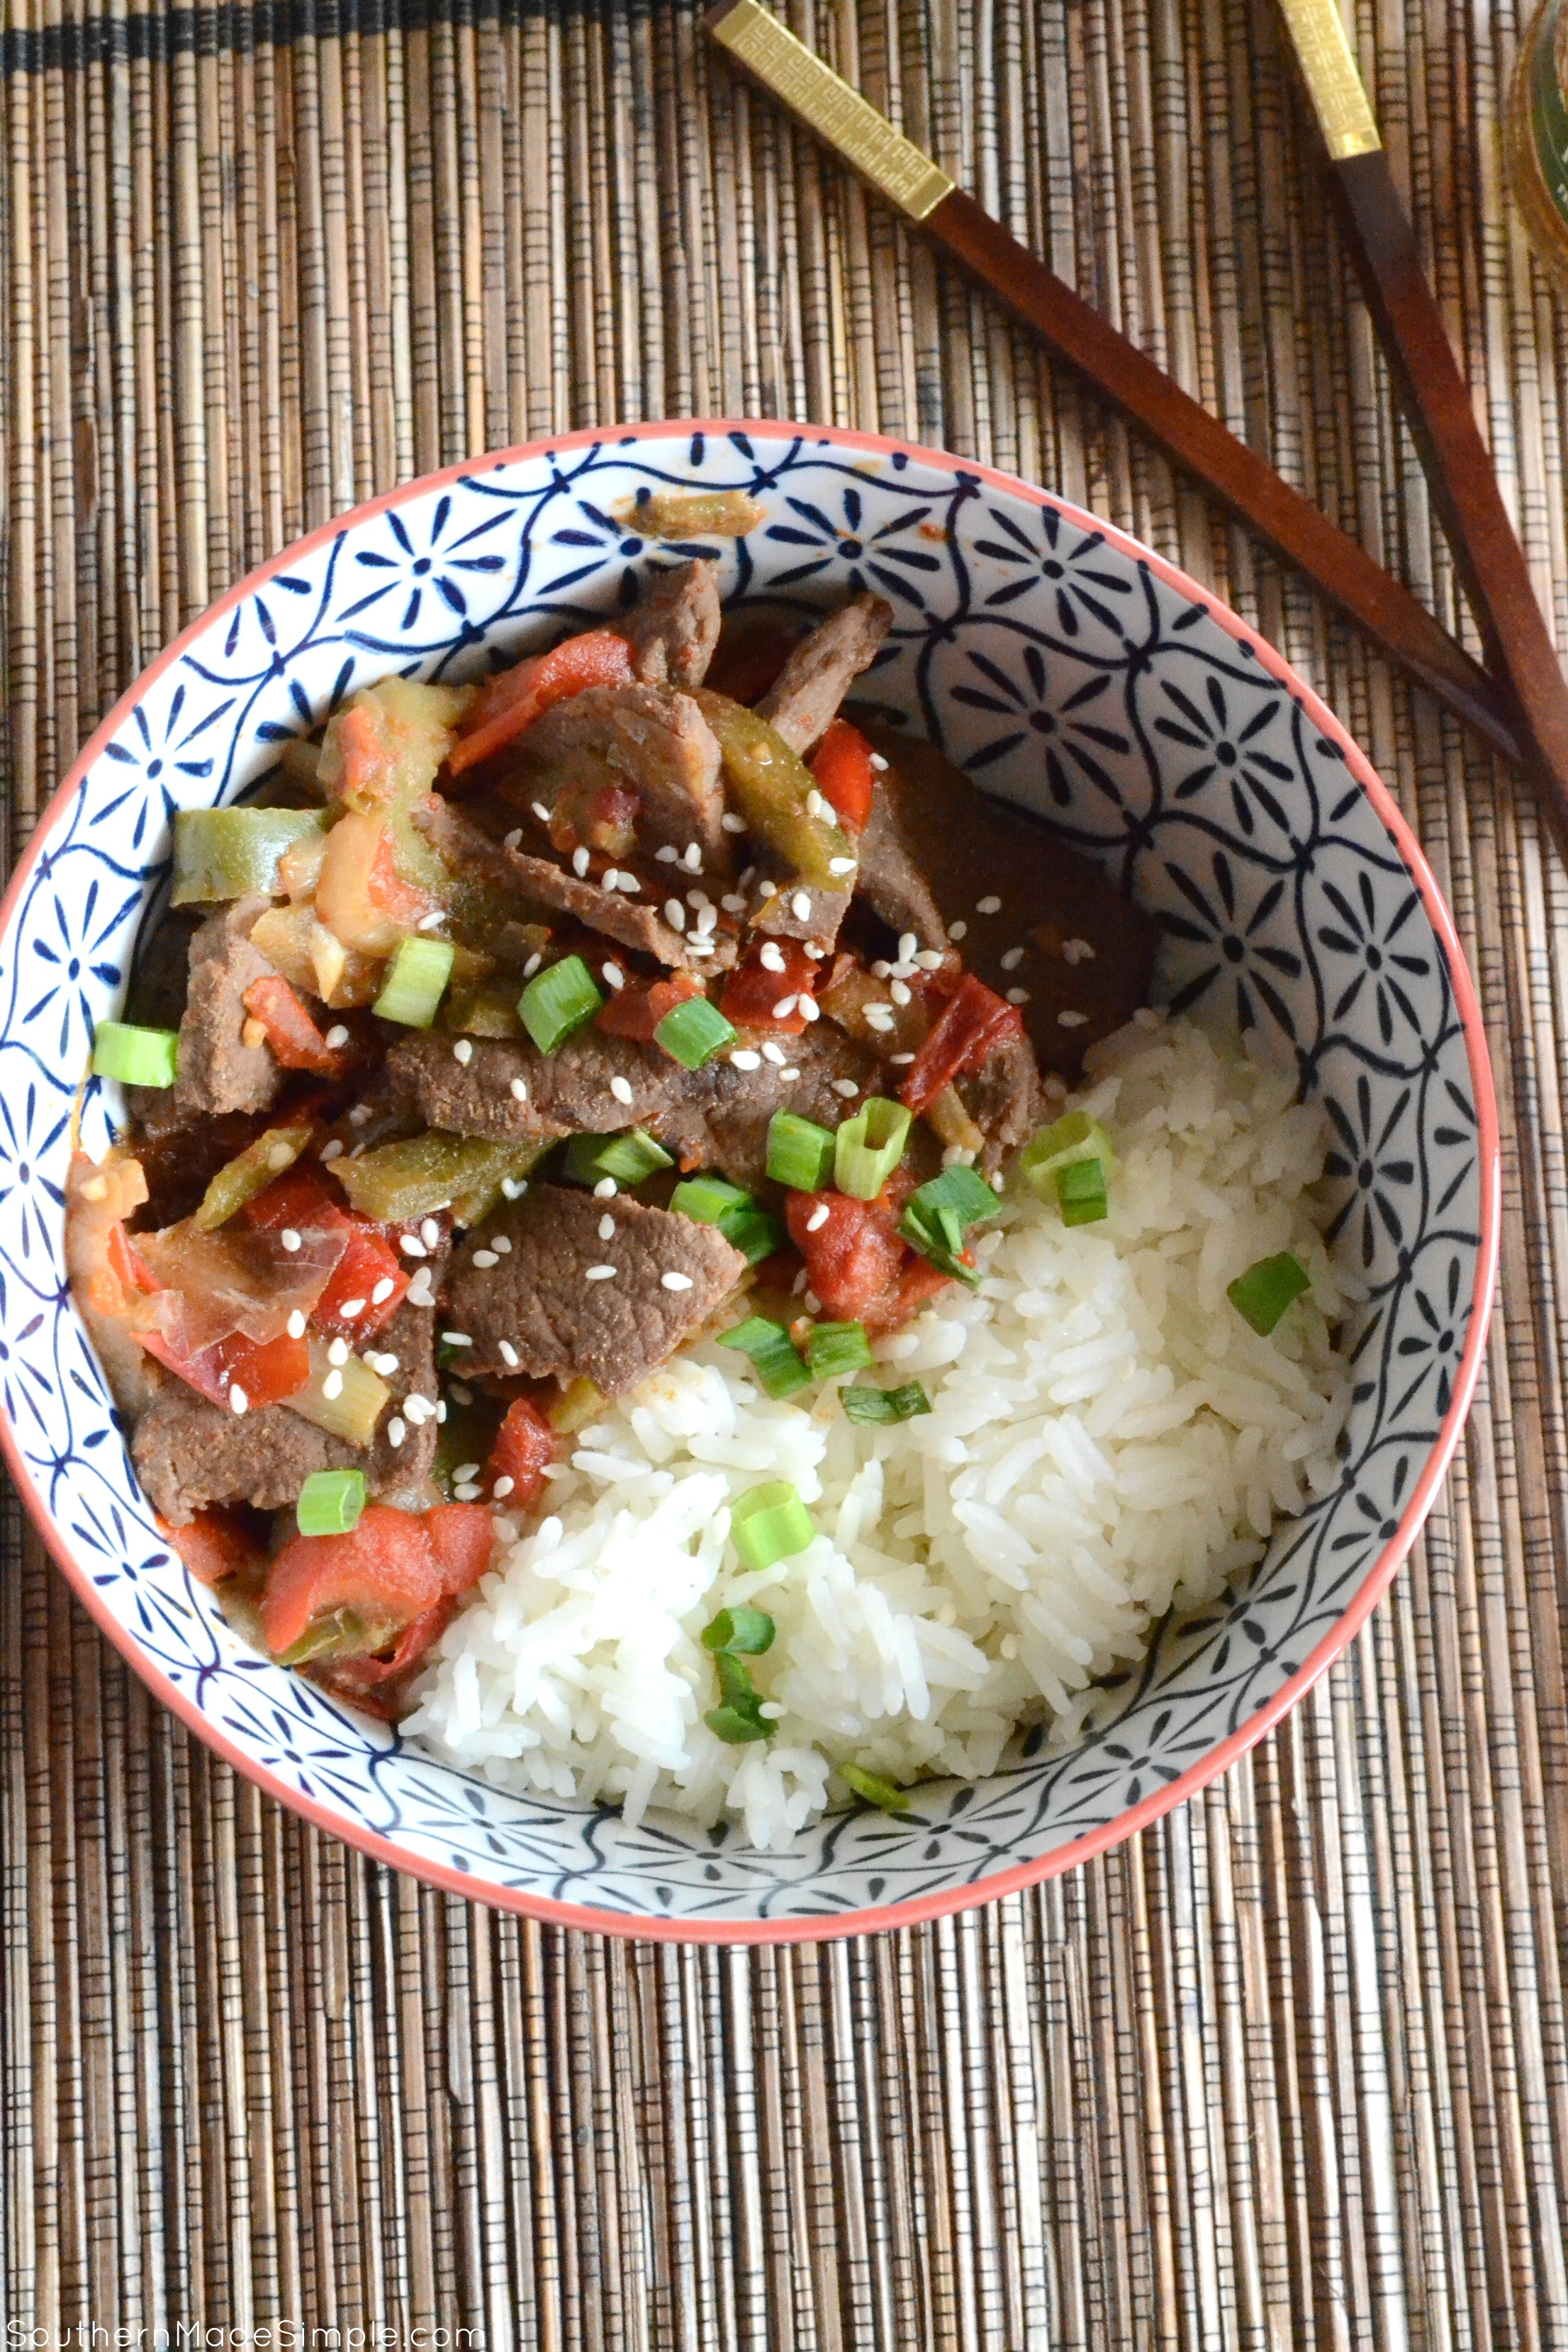 If you're looking to make a few new changes this year, consider adding leaner meats to your diet, such as delicious venison featured in this recipe for Honey Ginger Venison and Jasmine Rice Bowls! It's a simple and scrumptious way to pack in extra flavor to your meal without having a heavy fat content! #NAKANONewYear #NewYearSwaps #IC #ad